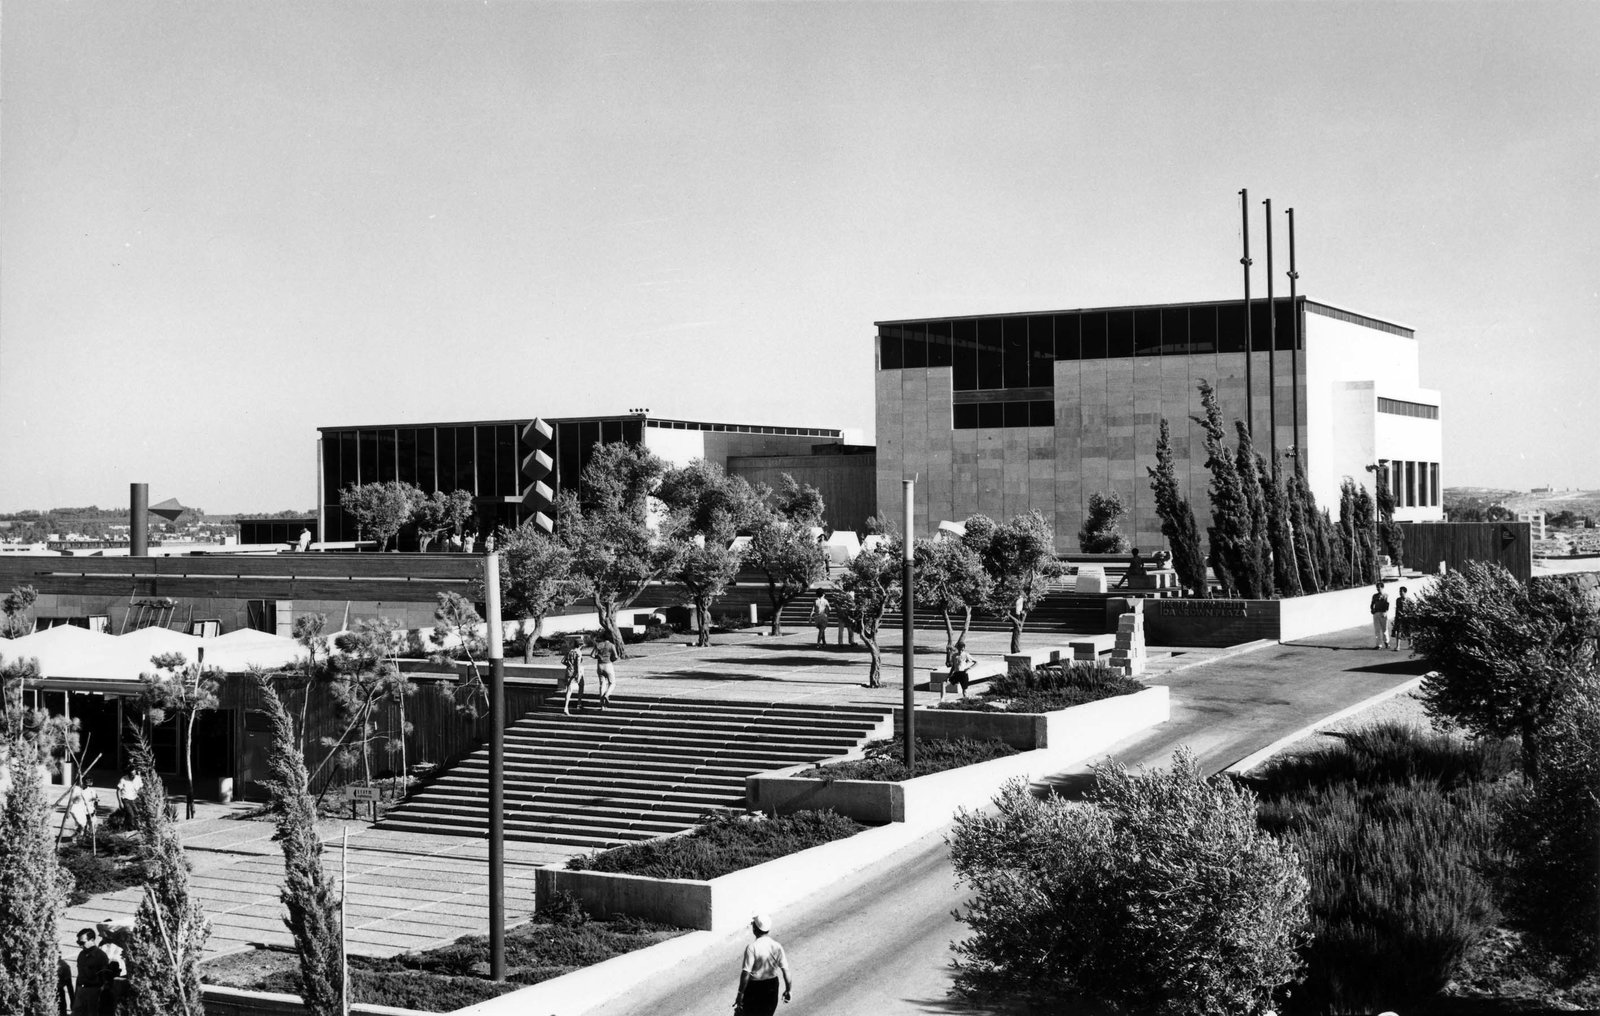 """In 1965, Israel was barely 17 years old,"" Snyder says. ""Teddy Kollek had barely become Jerusalem's mayor, and was determined to see it become a modern western capital like the great cultural capitals of Europe, and opening the Israel Museum that year was part of his vision.""  This is What Design Looked Like in Israel in 1965 by Allie Weiss from Best of #ModernMonday: What Makes a Building Iconic?"